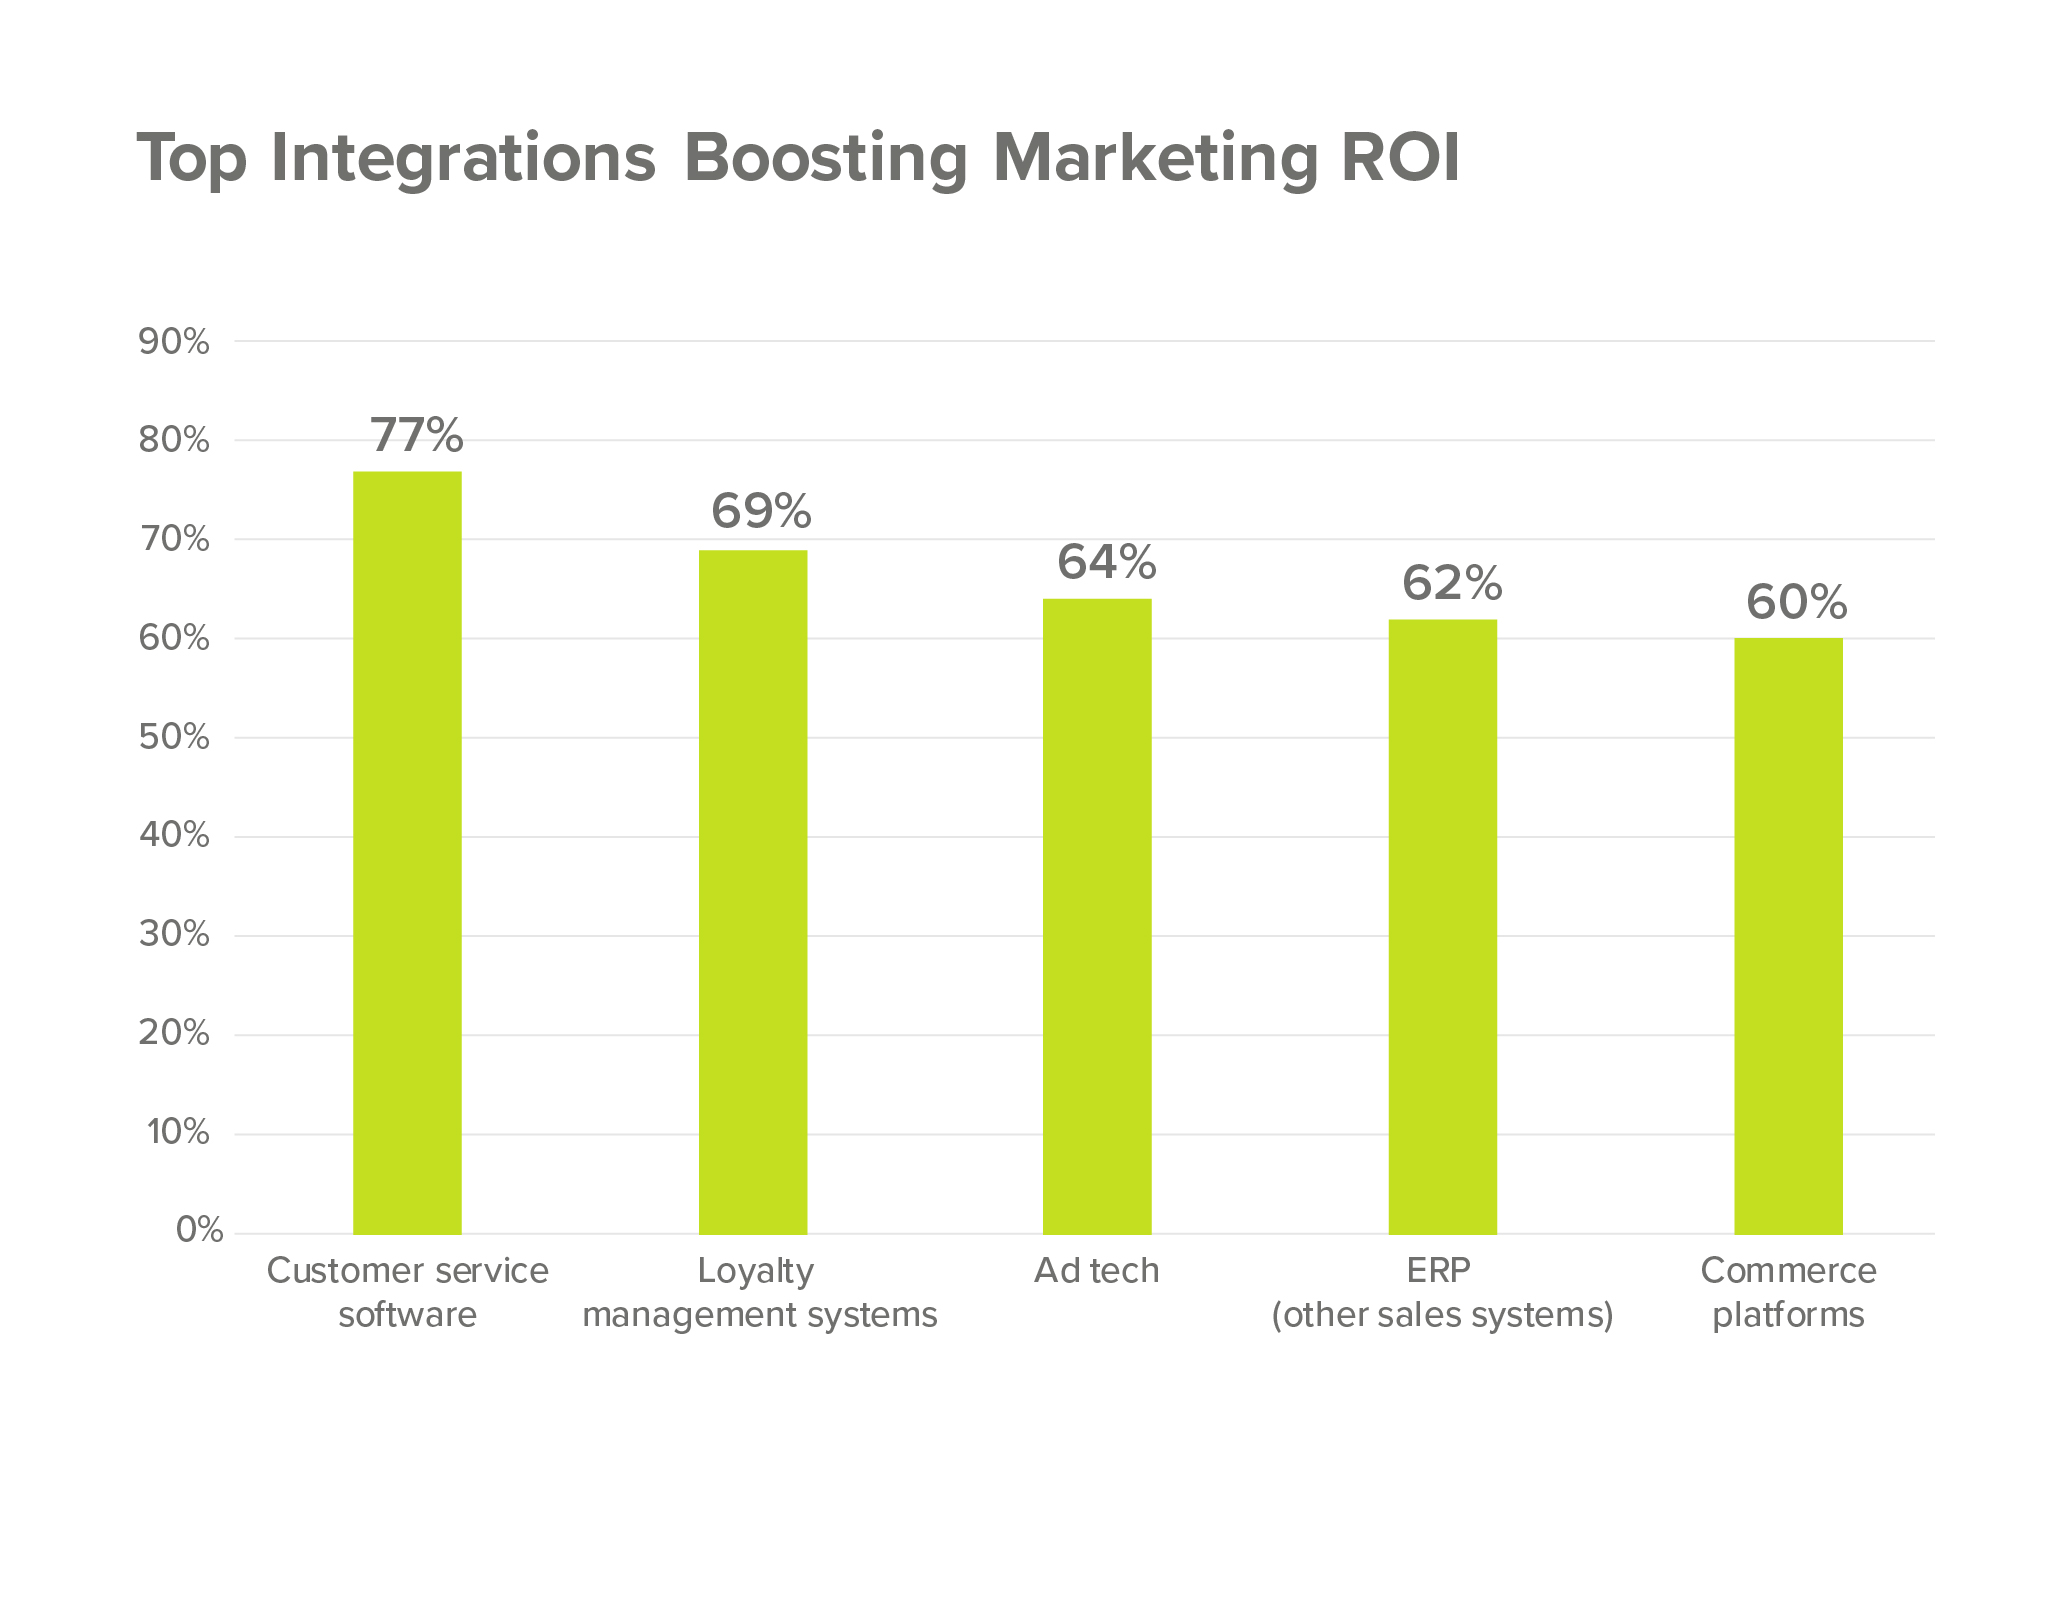 Software integrations boosting marketing ROI